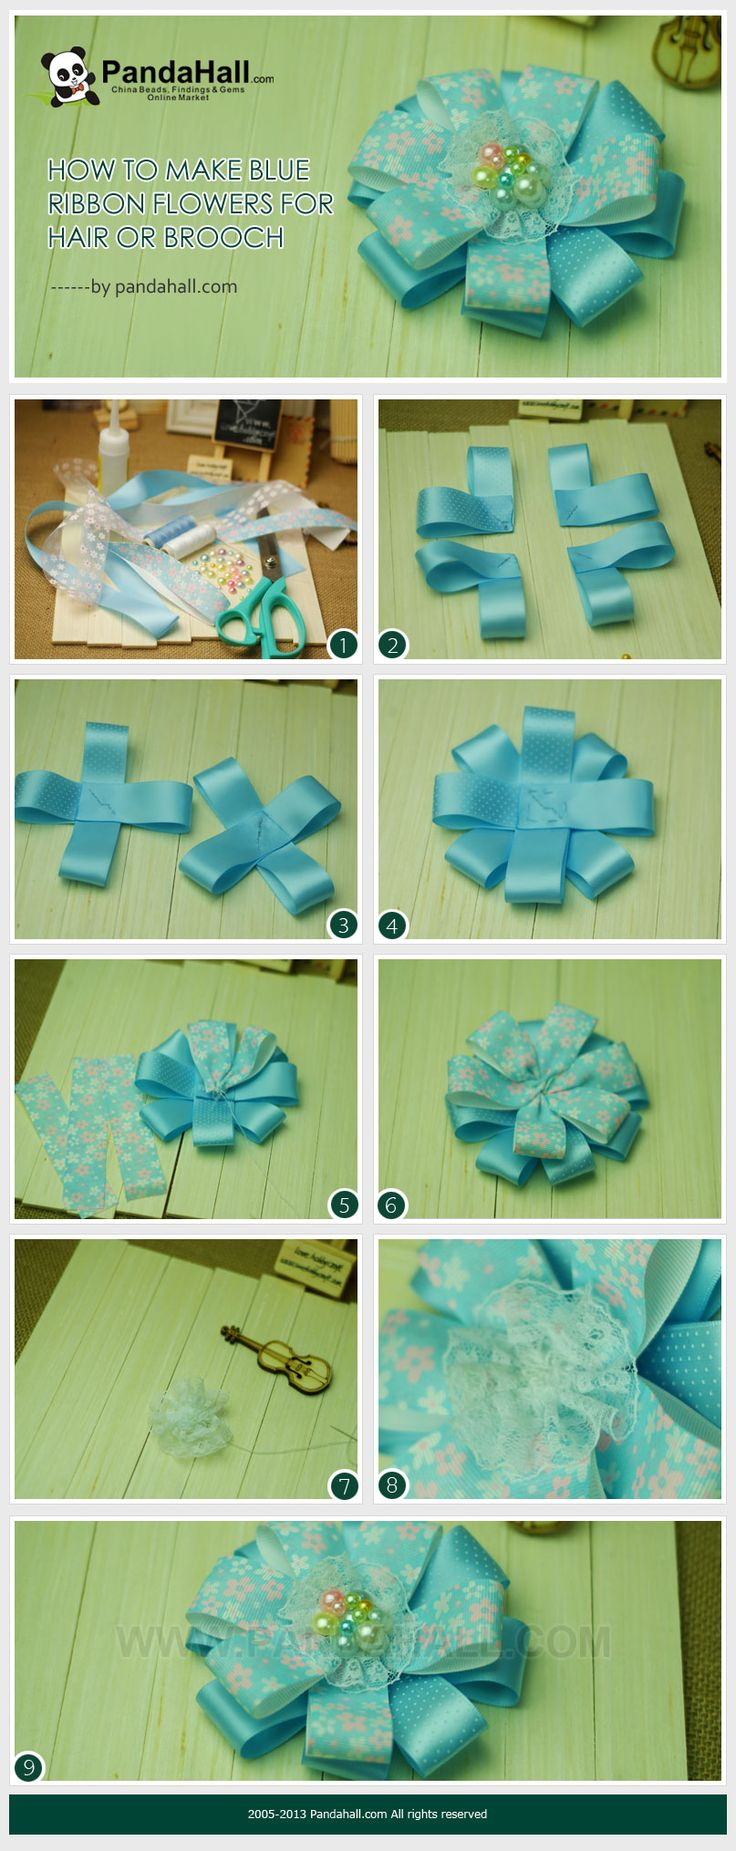 How to Make Blue Ribbon Flowers for Hair or Brooch